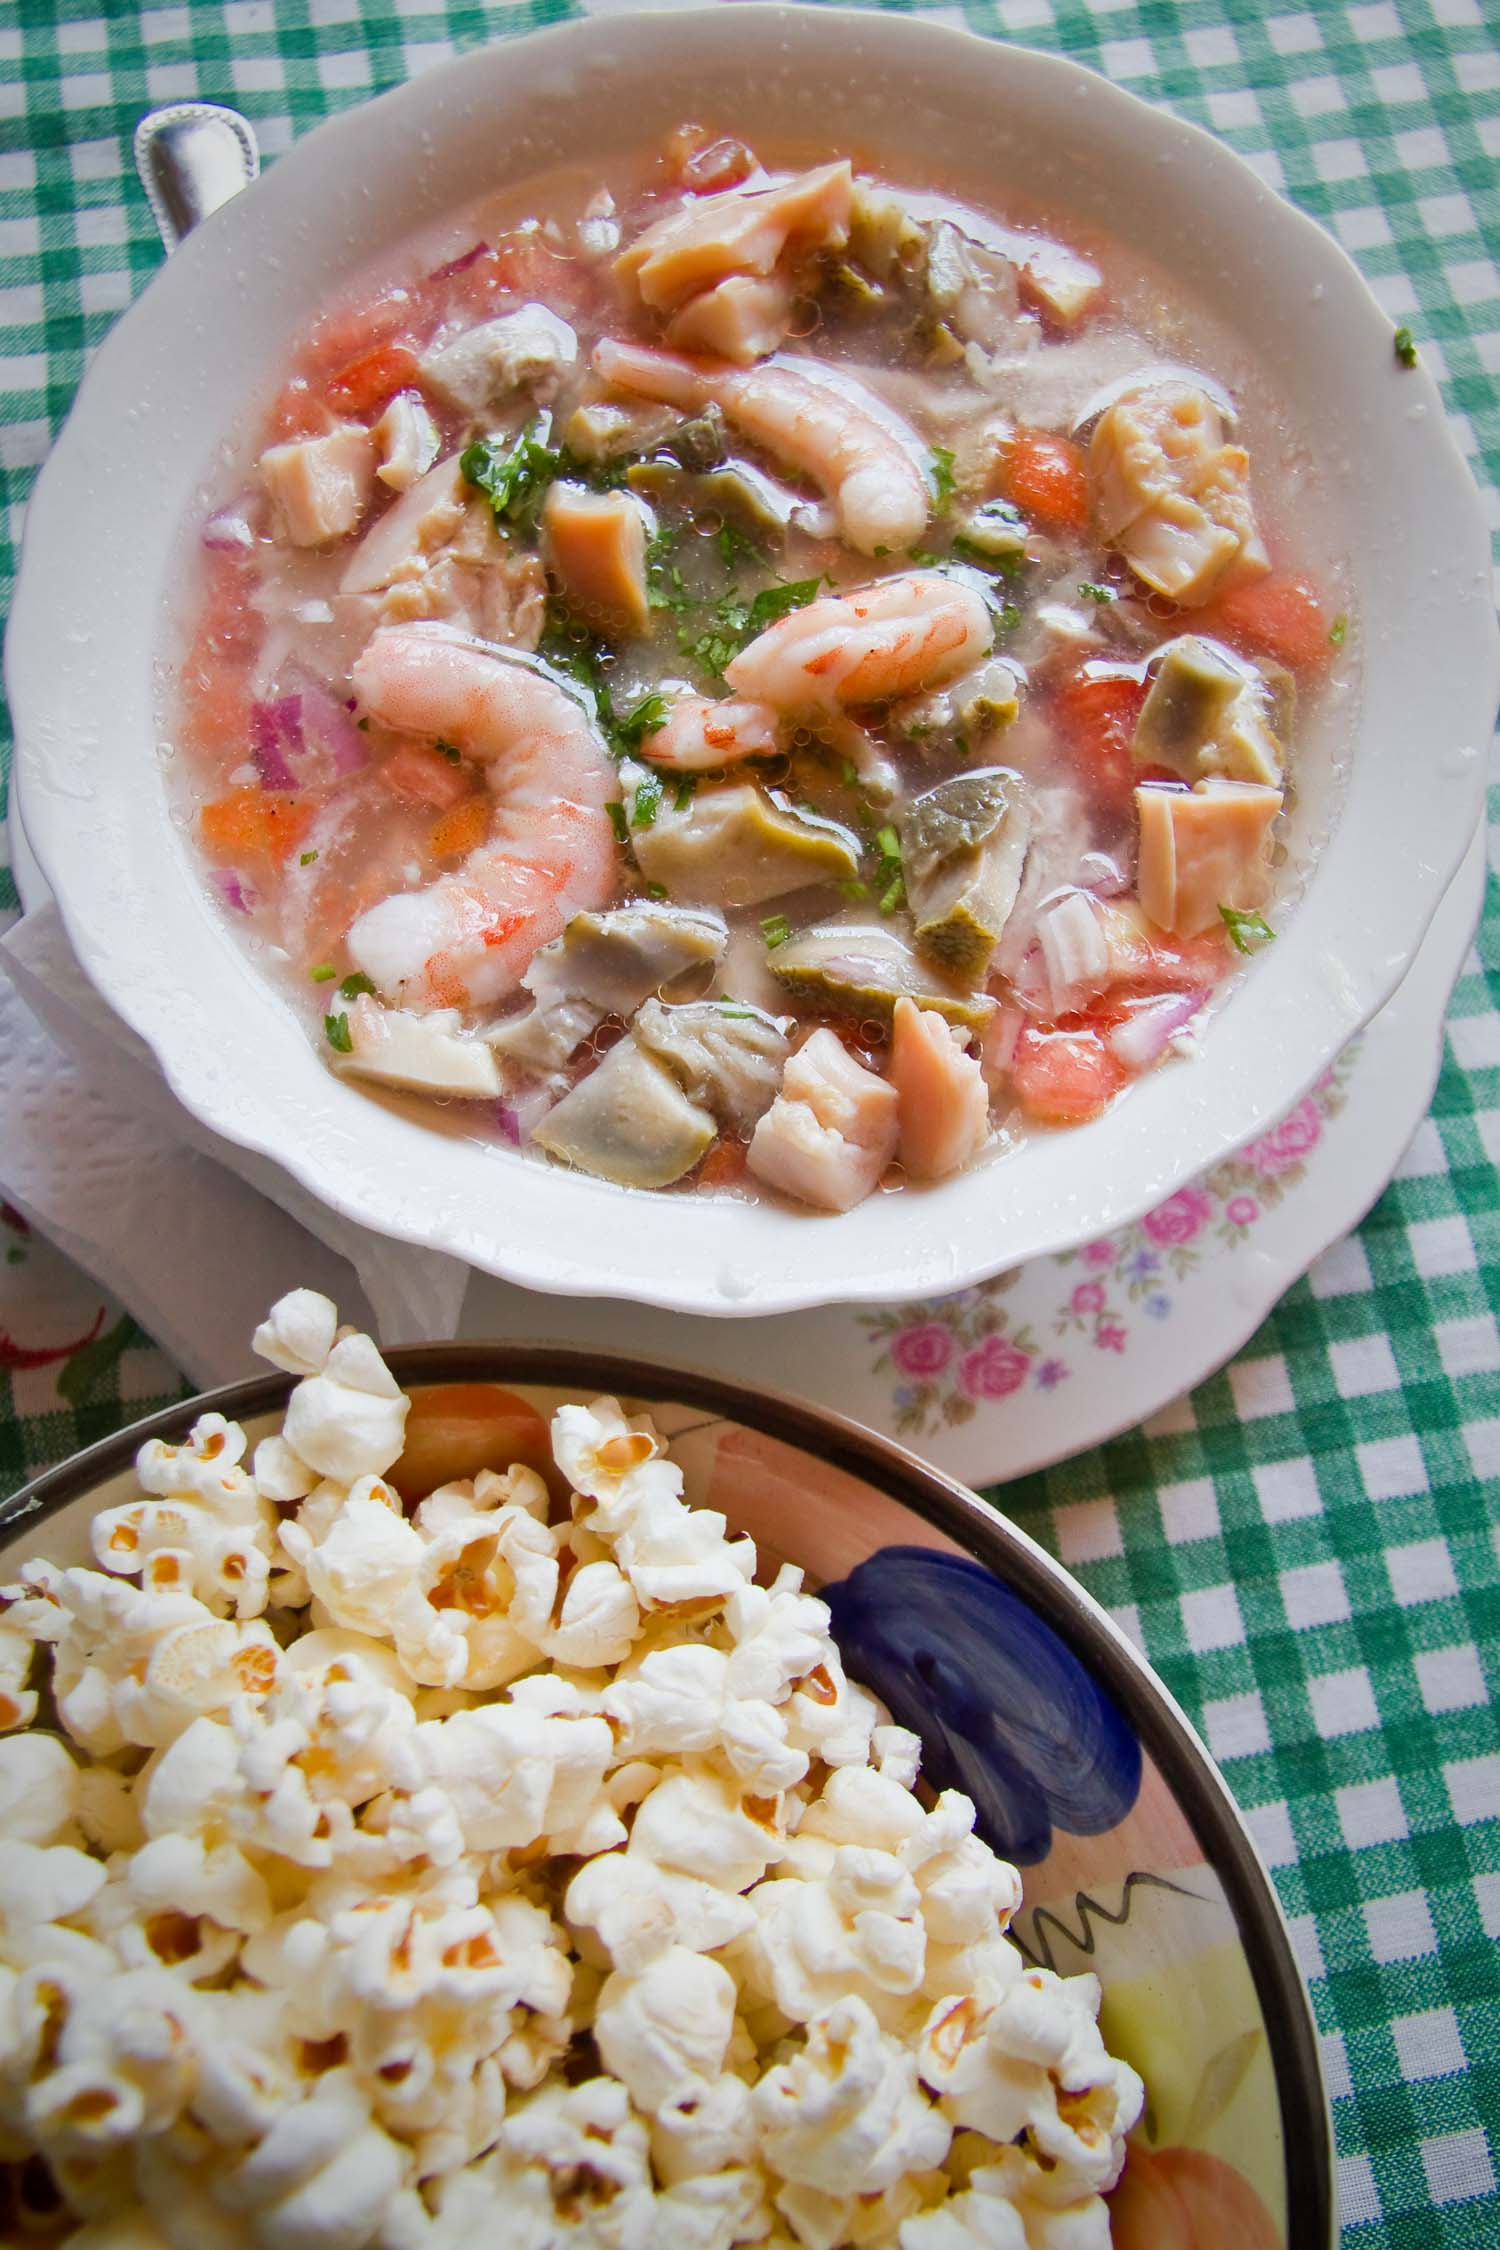 Ecuadorian ceviche with shrimp and served next to popcorn.